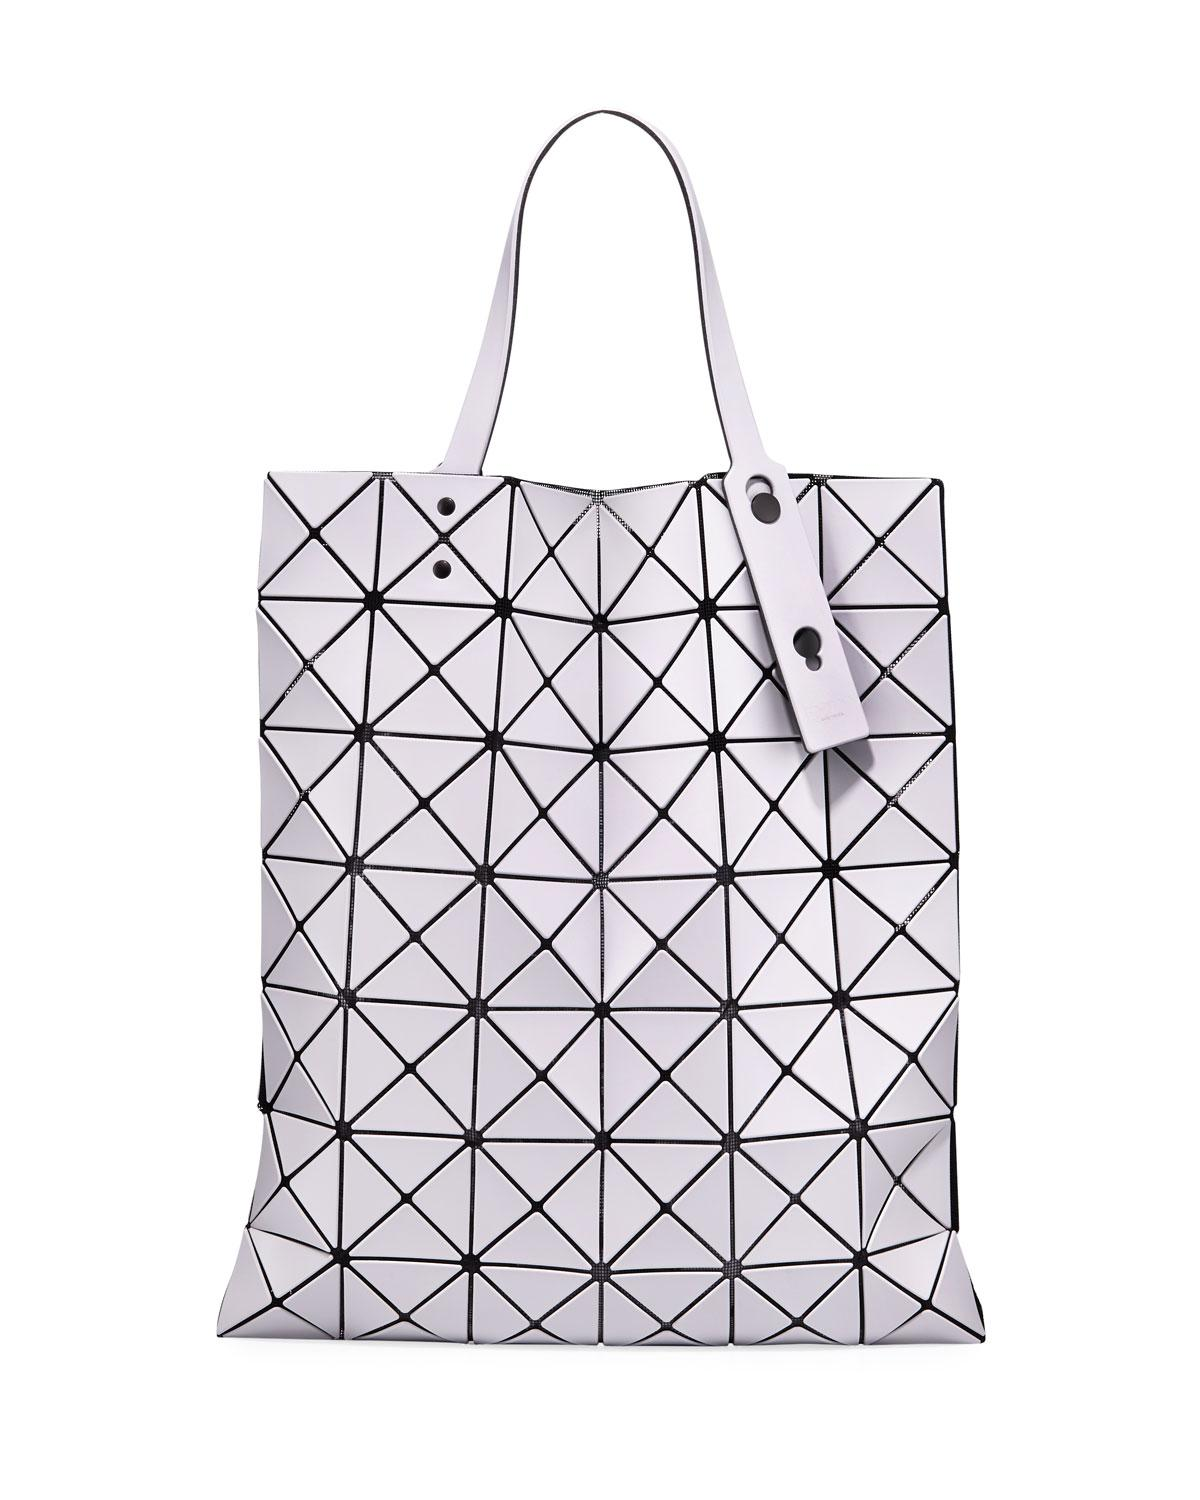 Bao Bao Issey Miyake Lucent Matte Tote Bag in Gray - Lyst 7b477fd9c5654